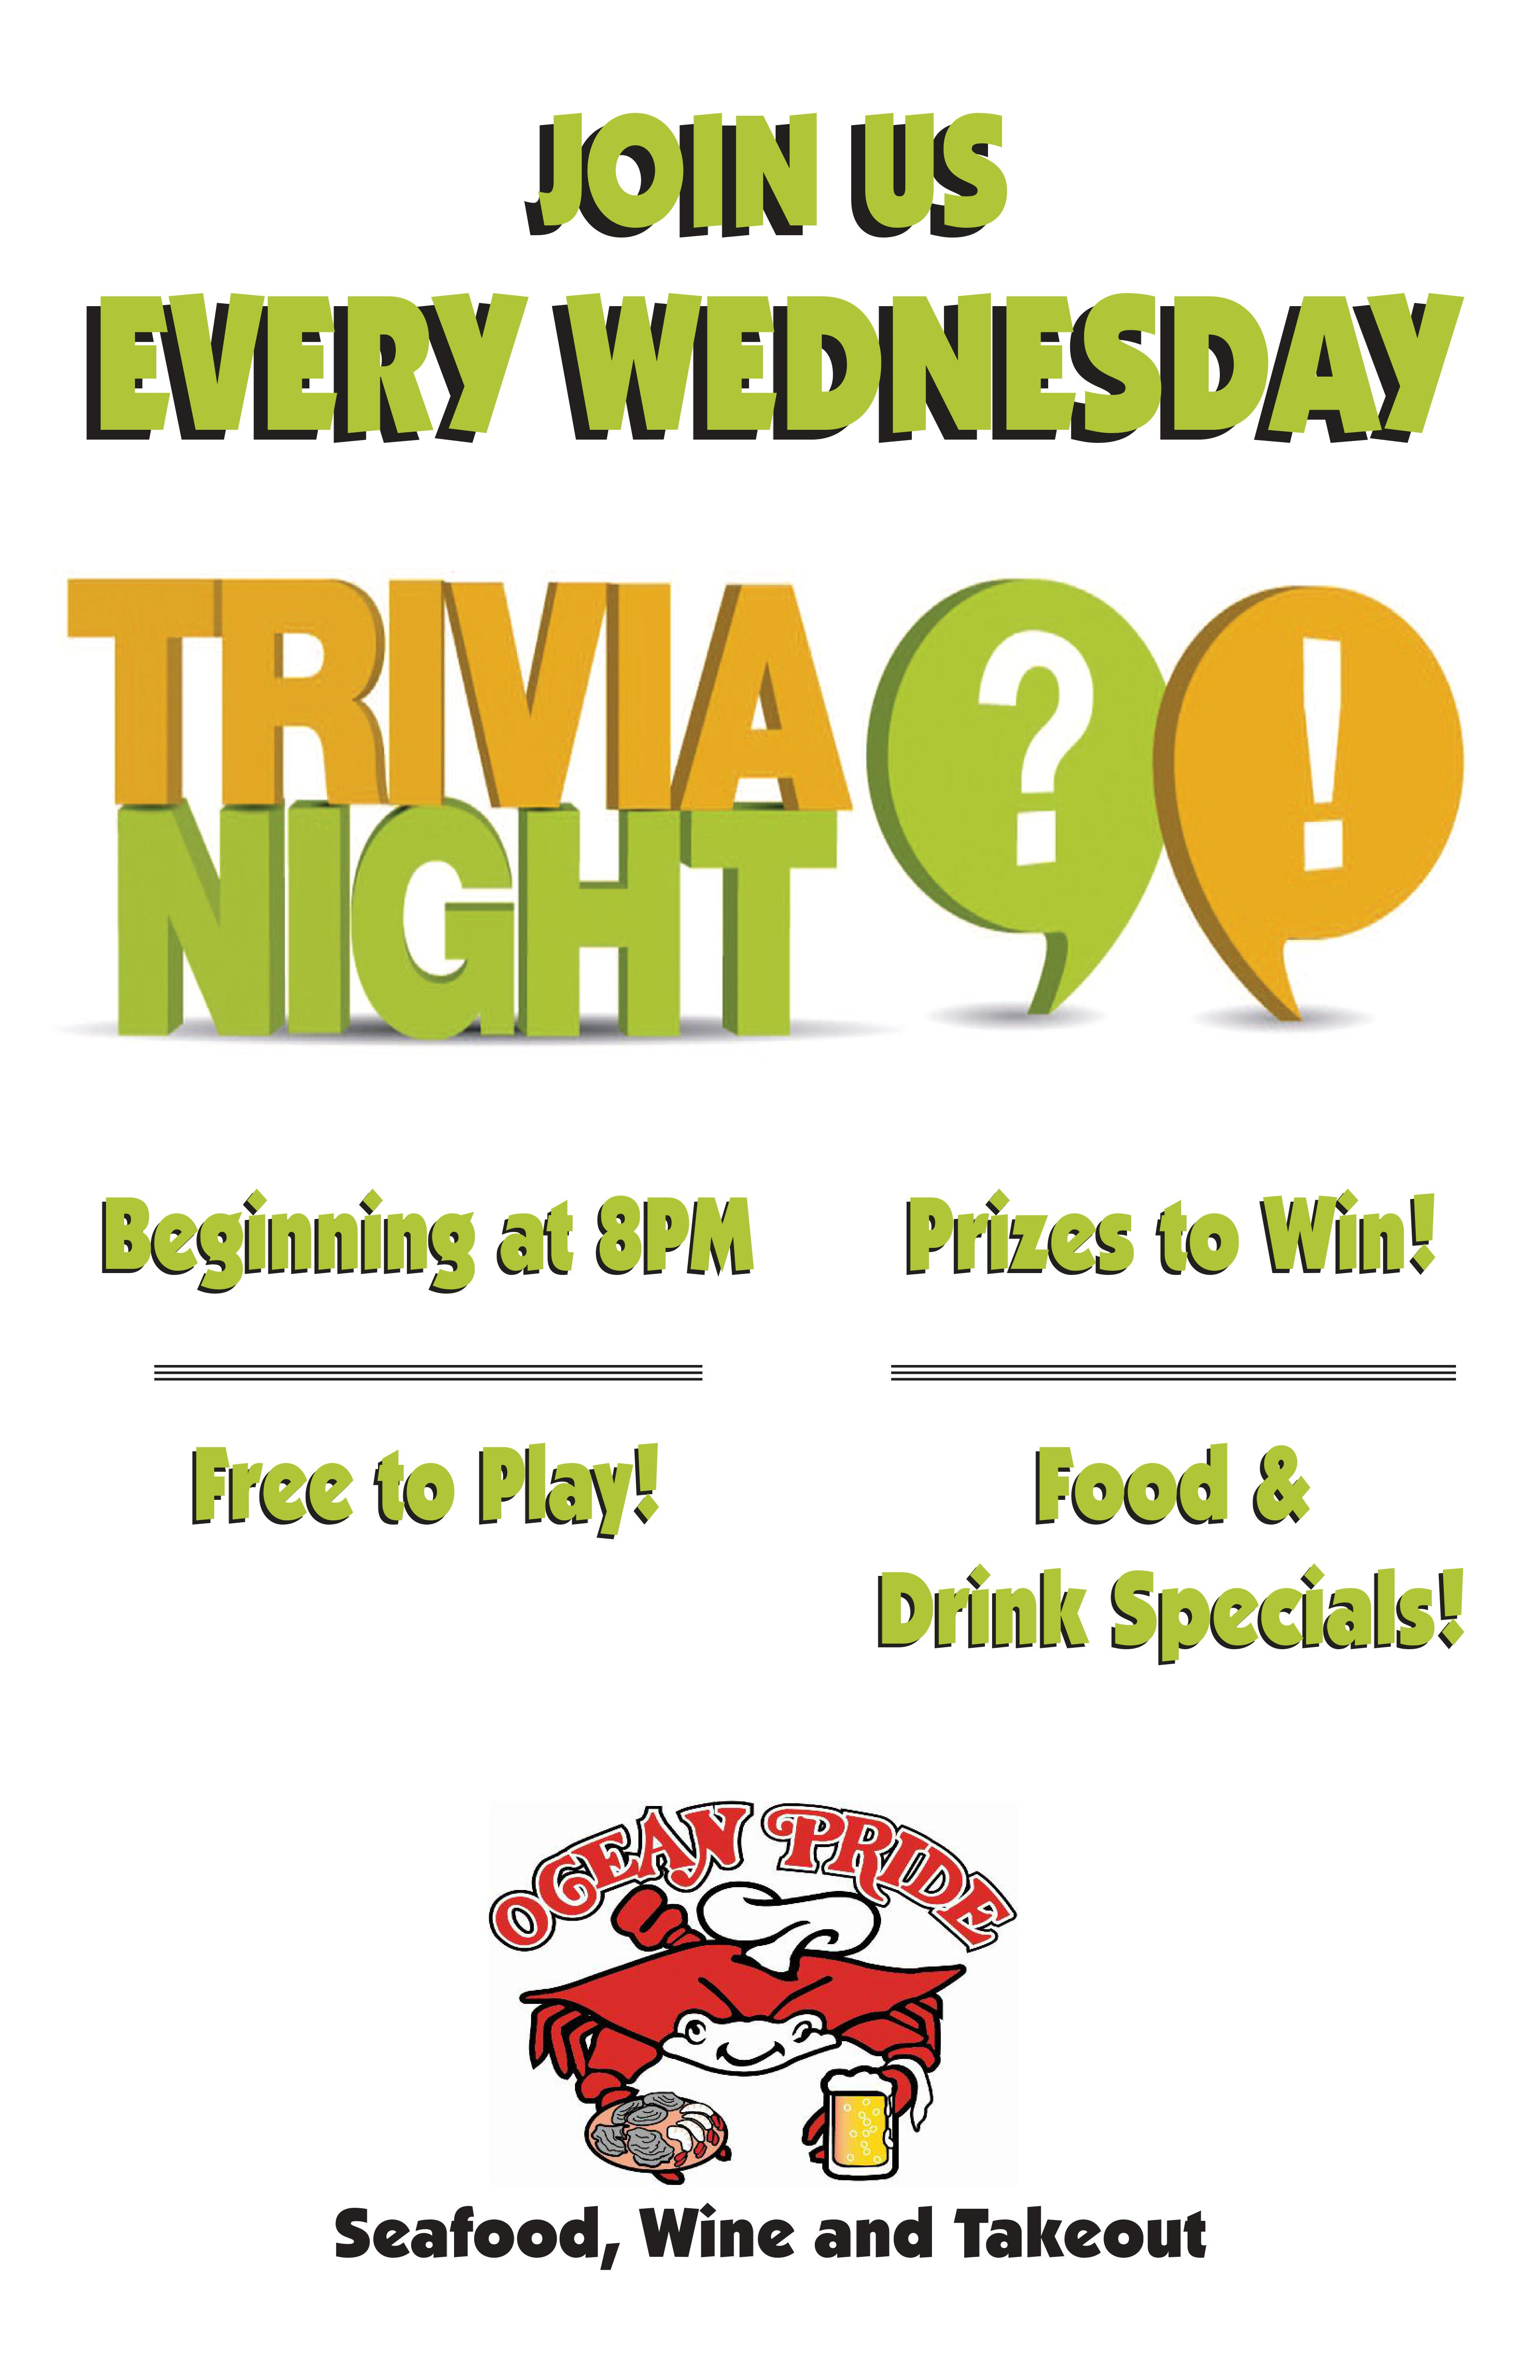 join us every wednesday trivia night ? ! beginning at 8pm prizes to win! free to play! food & drink specials! ocean pride seafood, wine and takeout